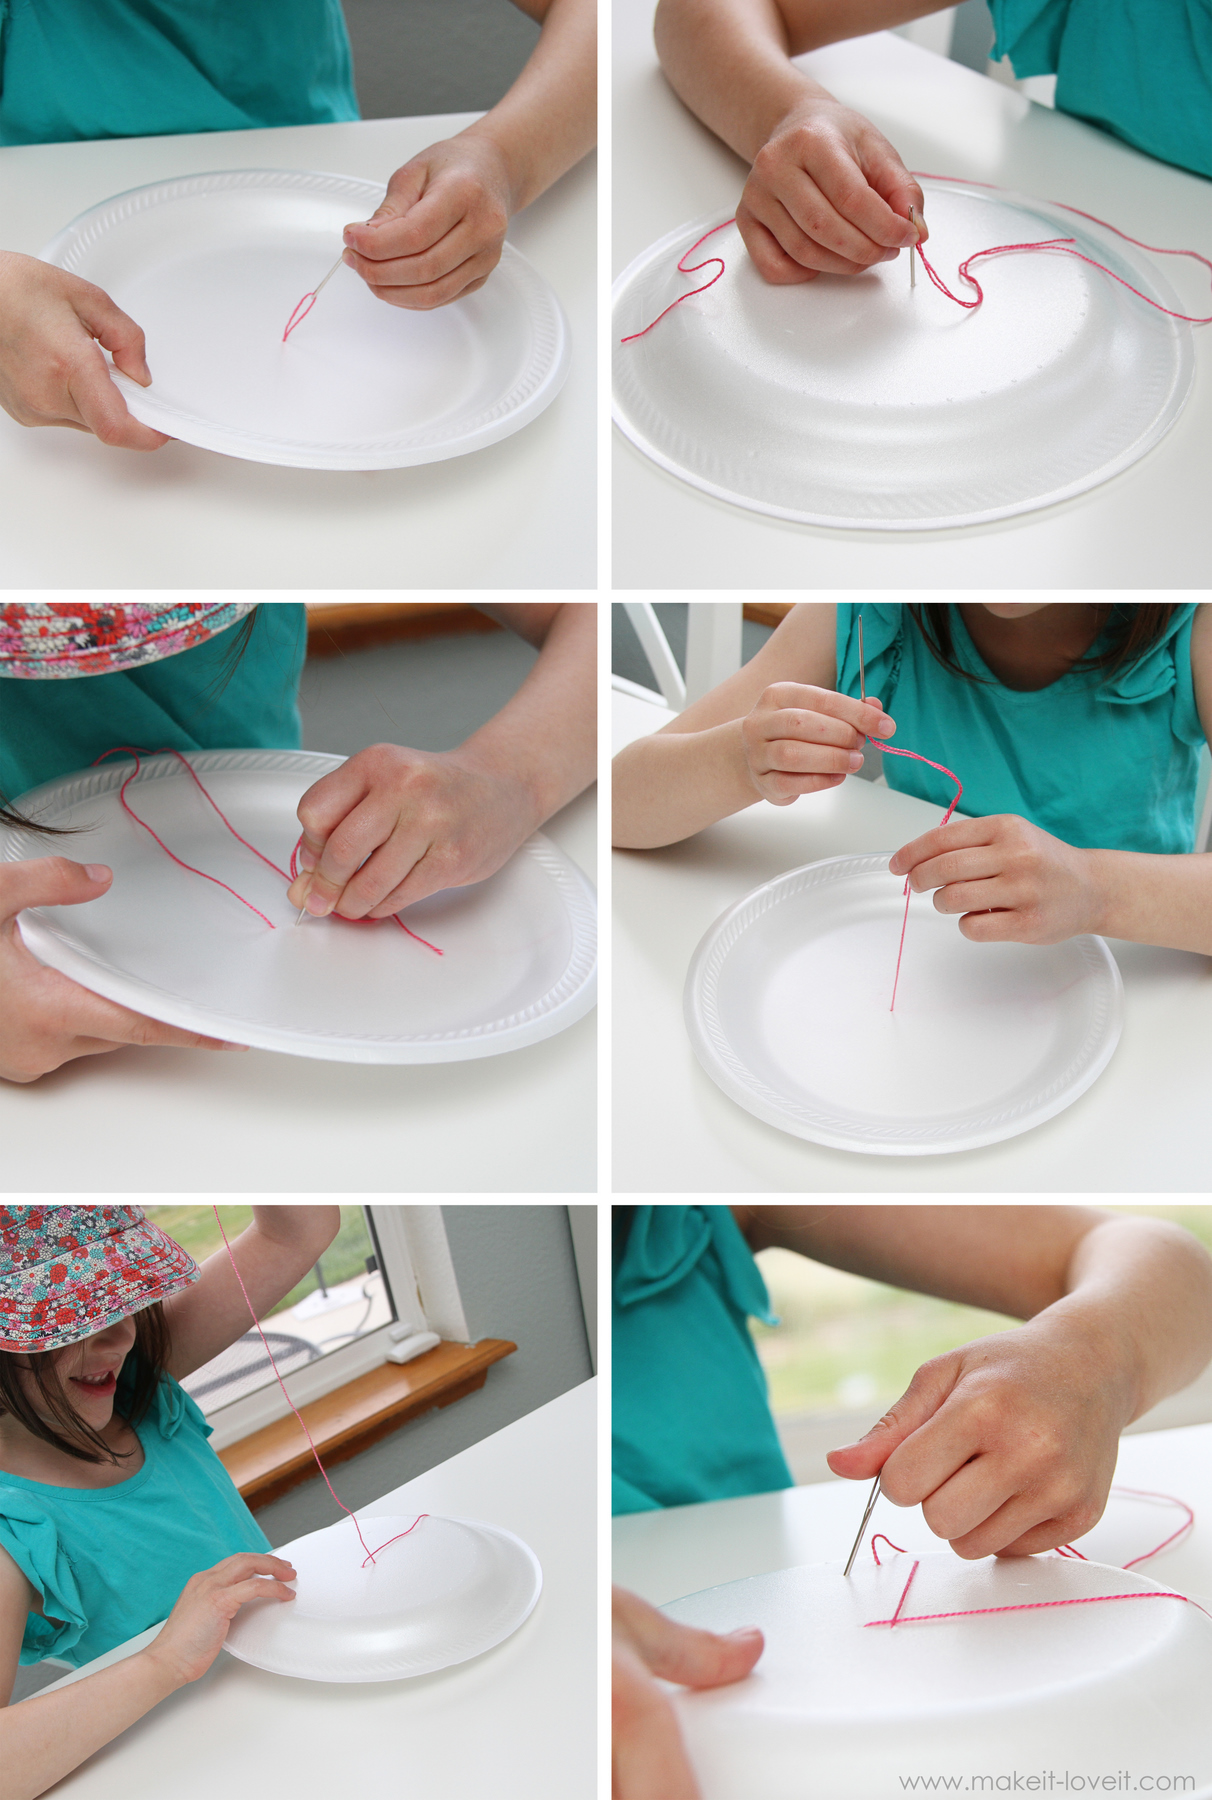 Sewing Lessons For Kids Part 1 Easy Projects To Teach